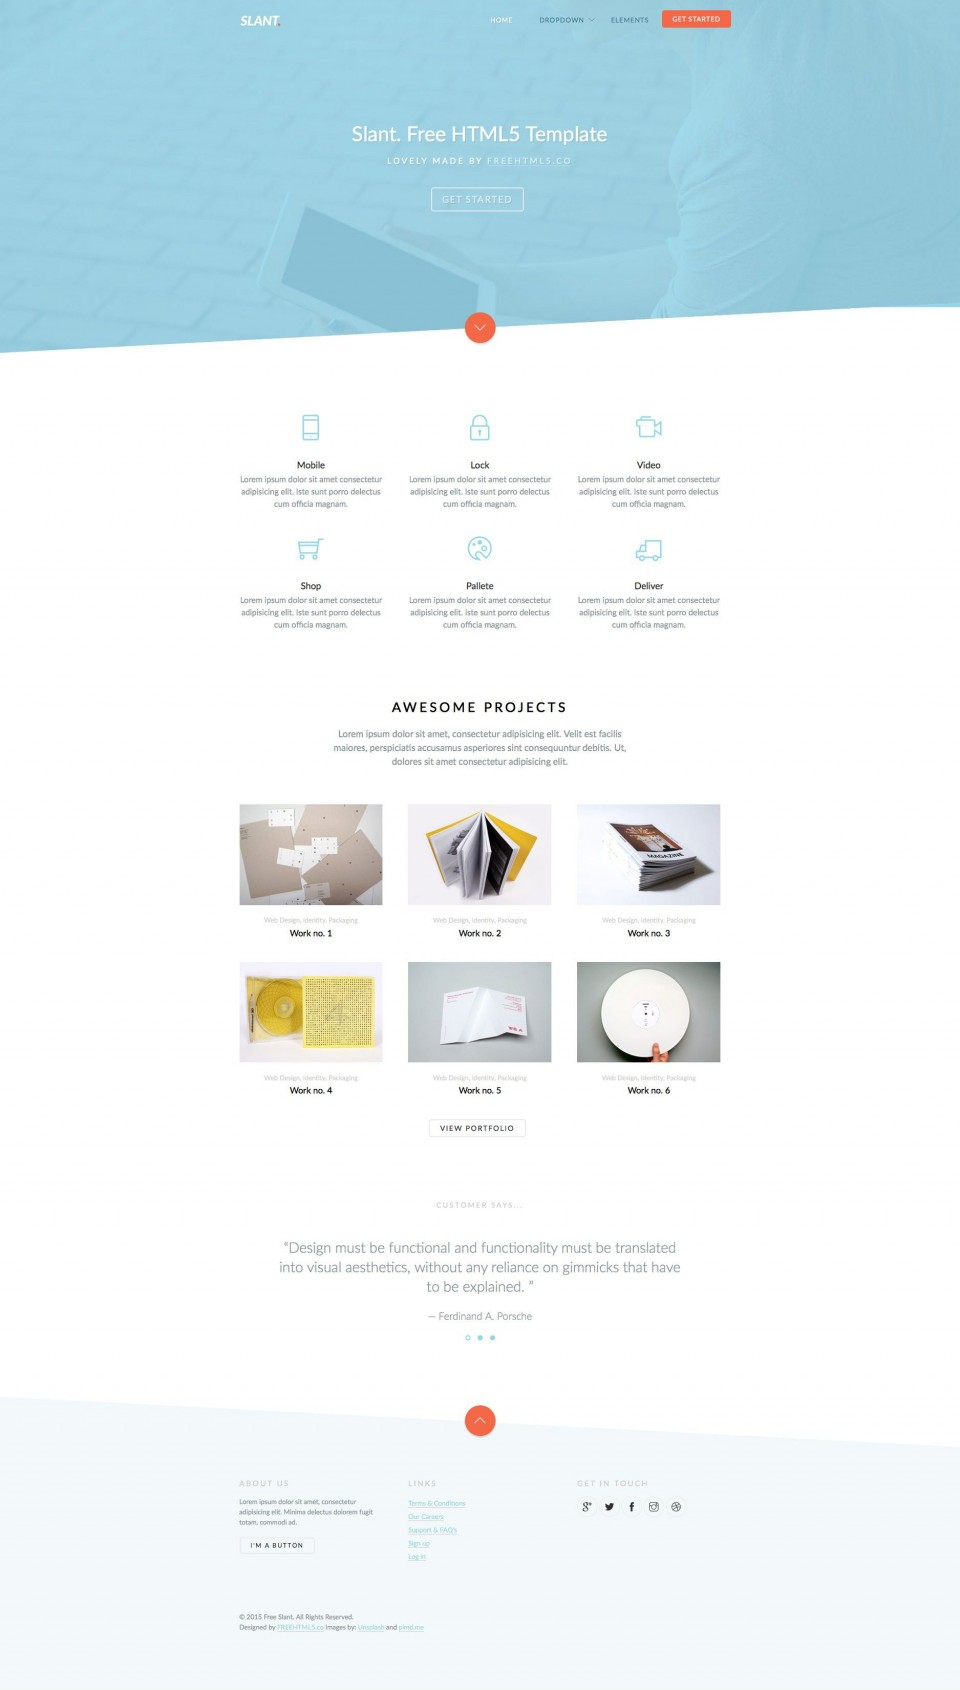 006 Awesome Free Responsive Website Template Download Html And Cs Jquery High Resolution  For It Company960